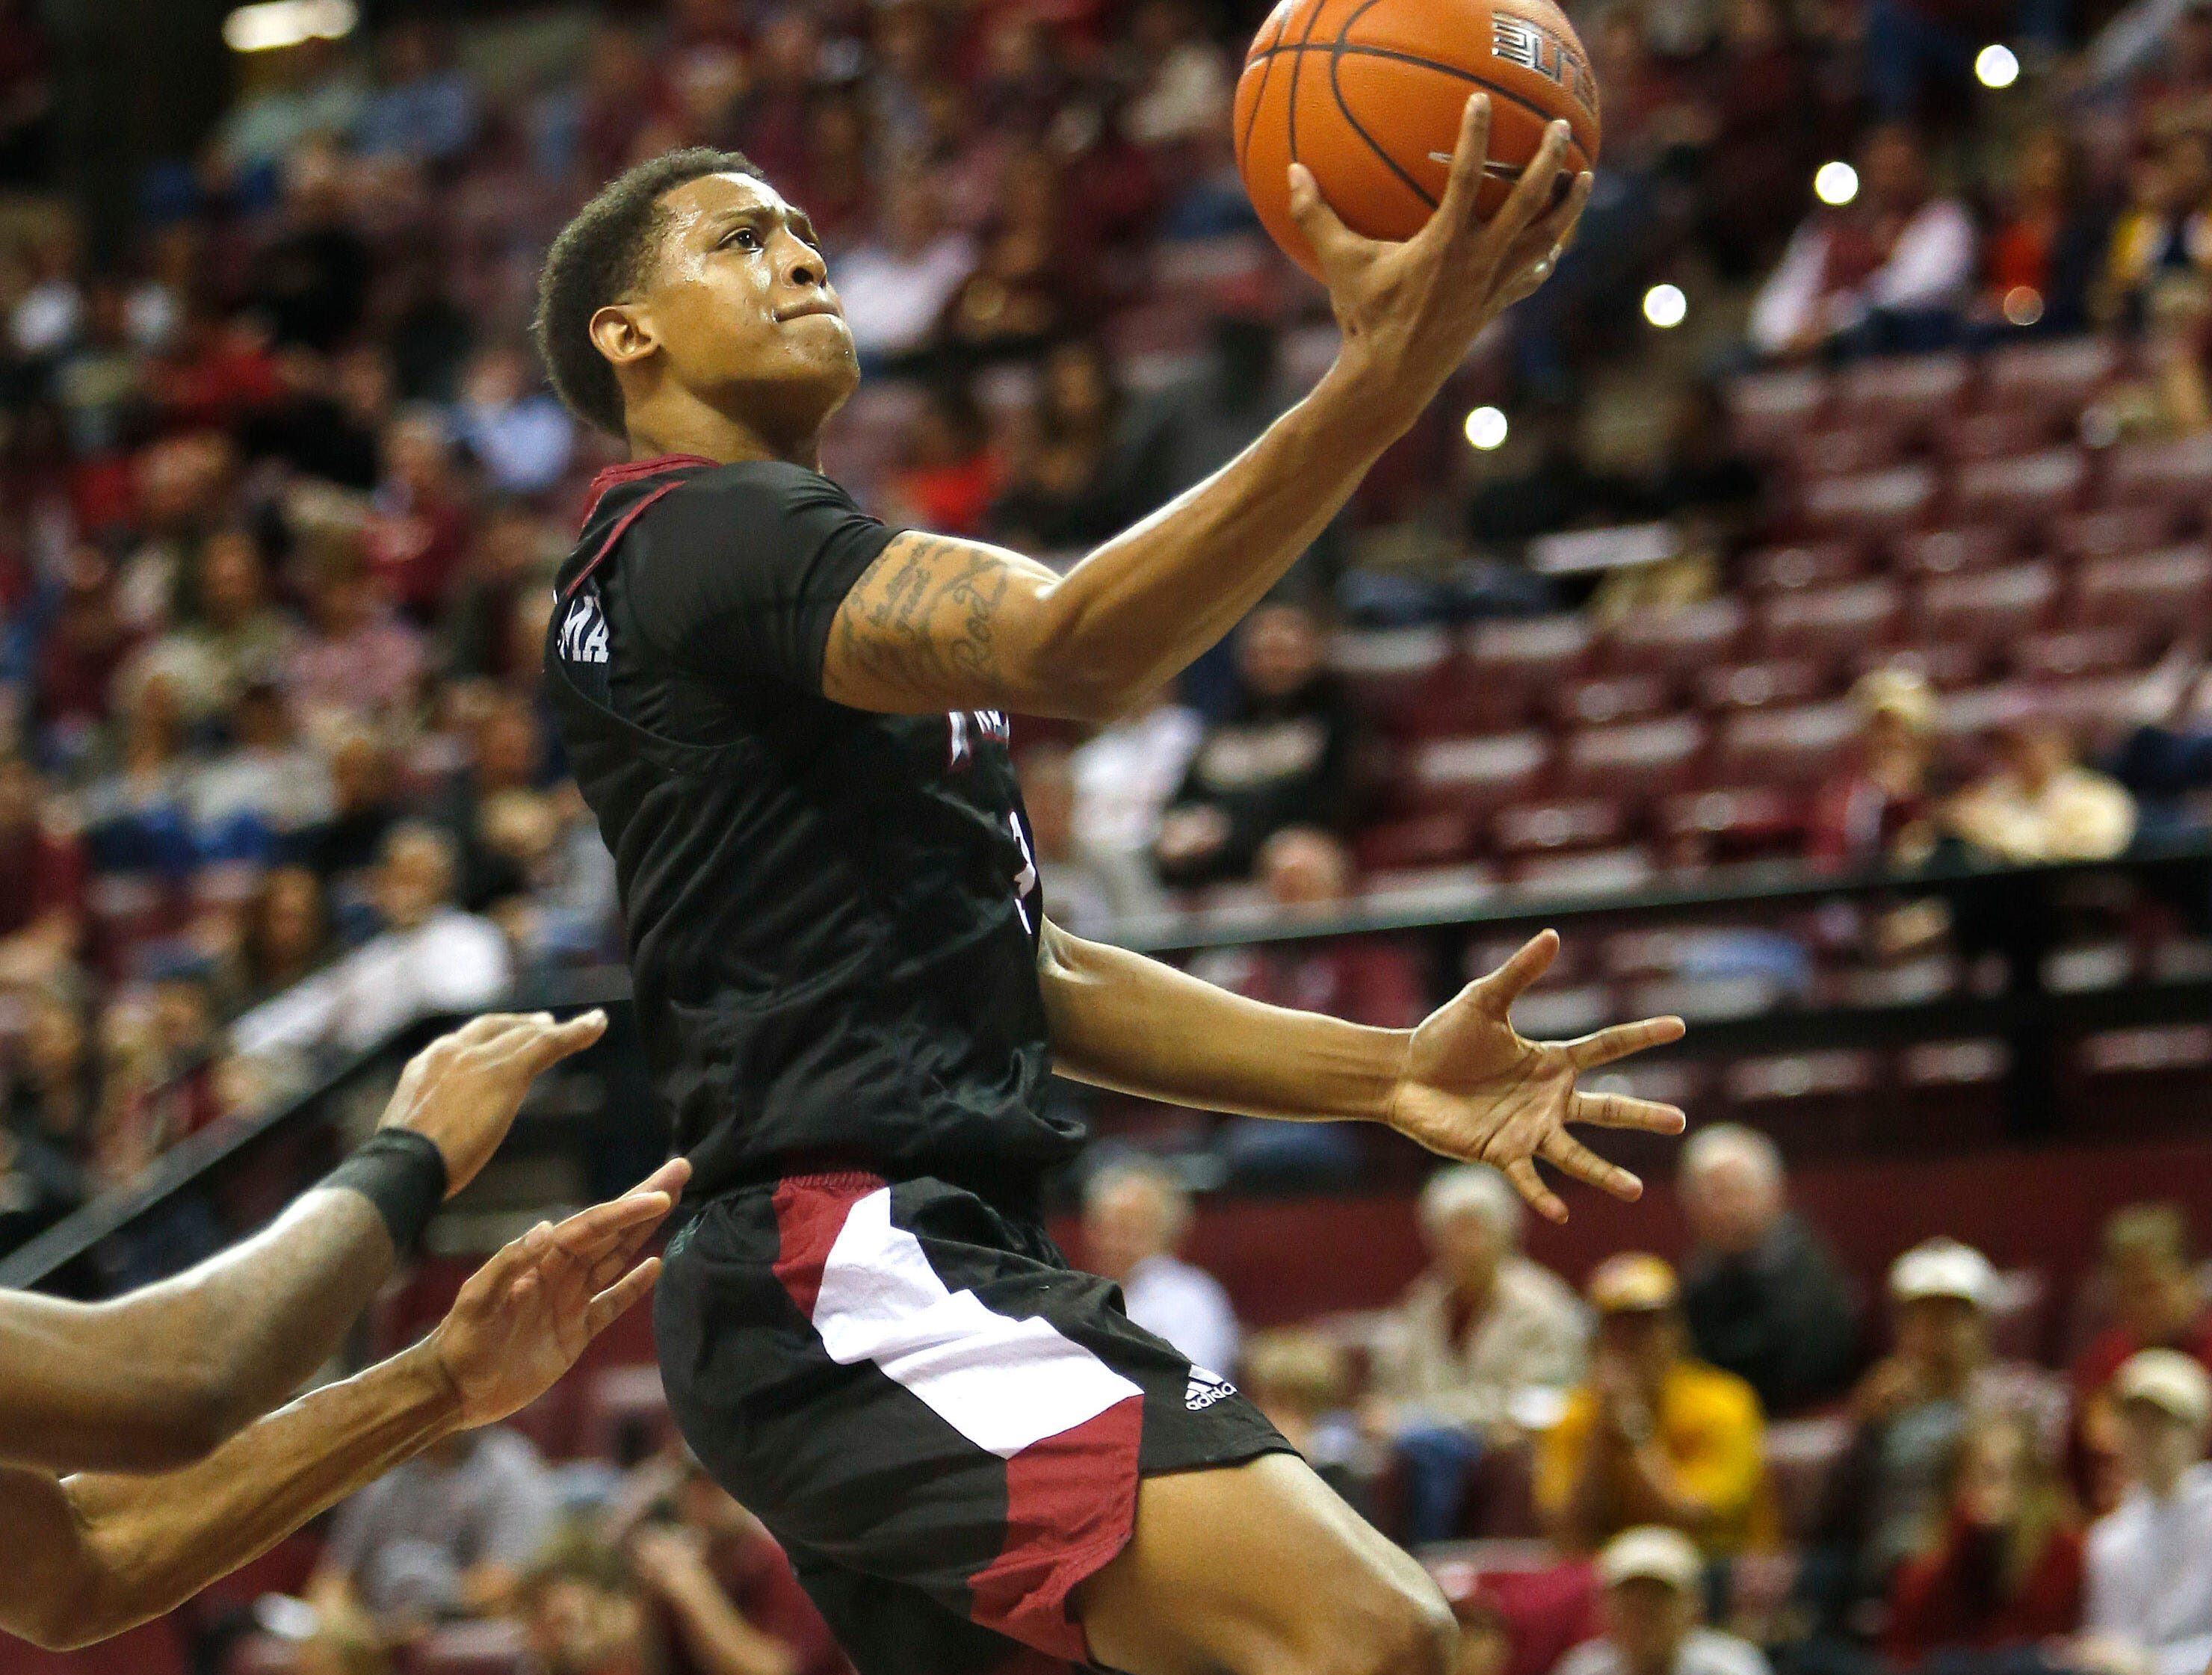 Dec 3, 2018; Tallahassee, FL, USA; Troy Trojans guard Darian Adams (3) scores against the Florida State Seminoles at Donald L. Tucker Center during the second half. Mandatory Credit: Glenn Beil-USA TODAY Sports